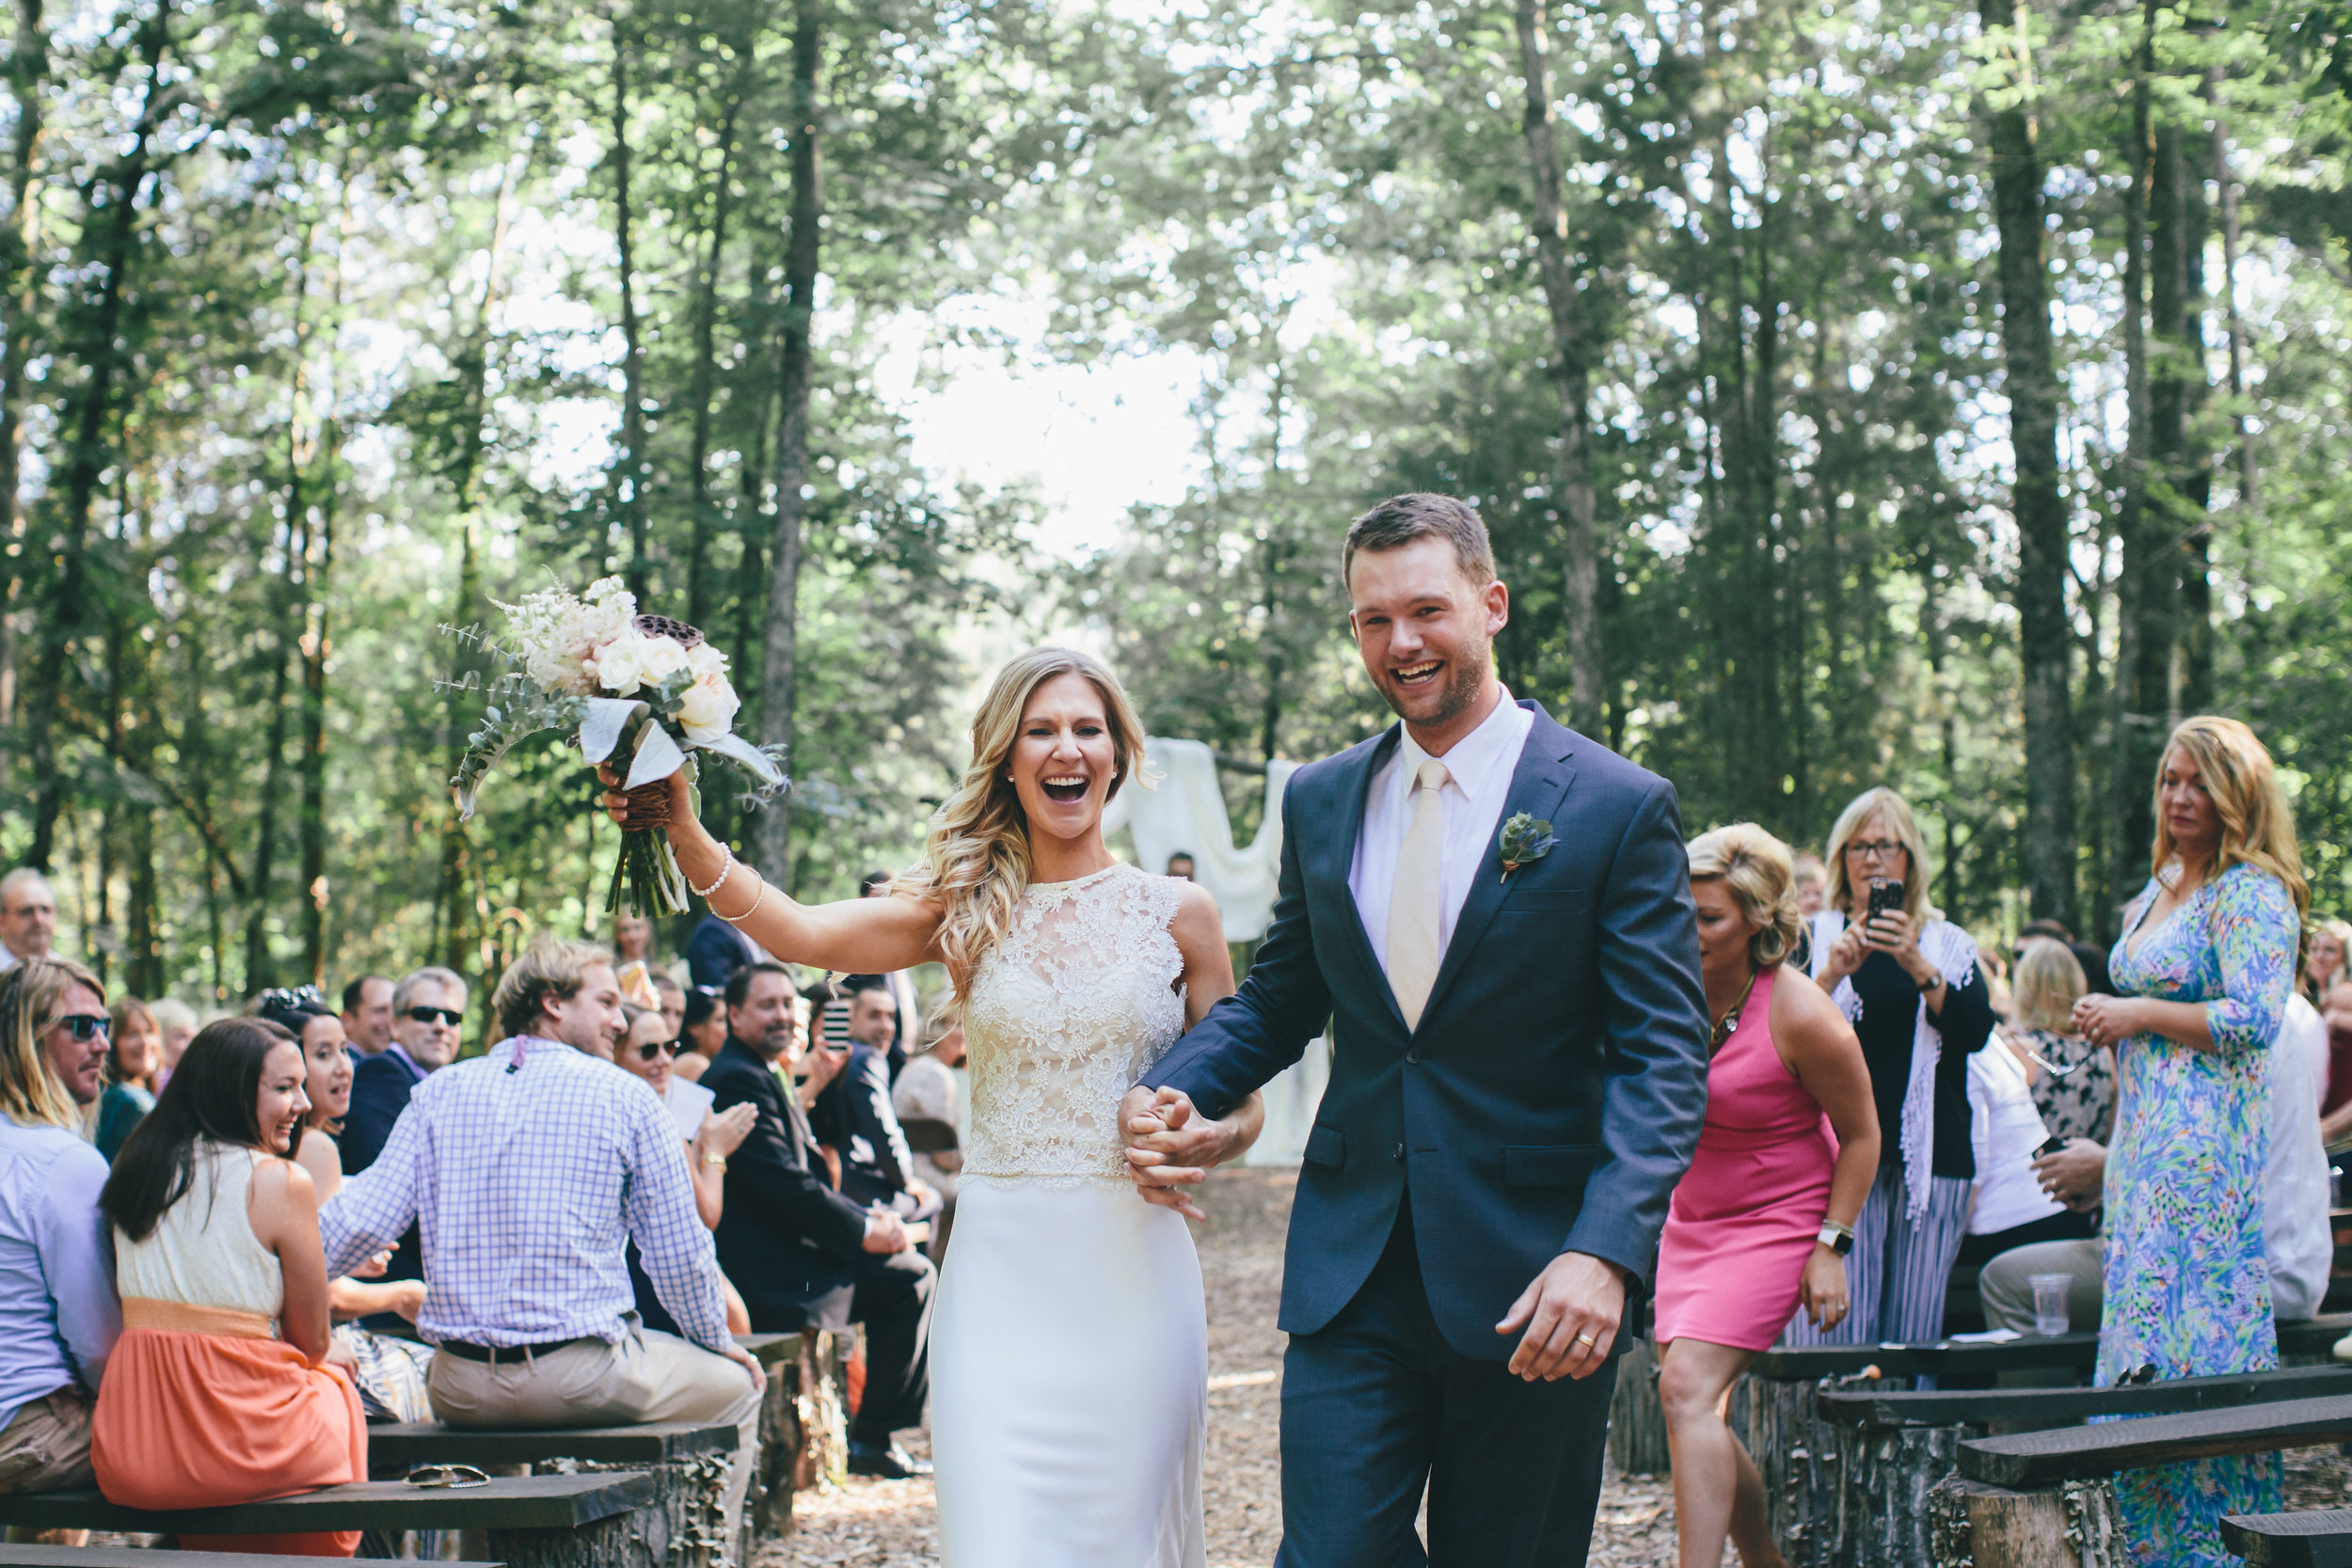 Ceremony-Only Package - Up to 50 peopleMon-Thurs: $800Friday & Sunday: $1,000Saturday: $1,400 (available December-March)Up to 100 peopleMon-Thurs: $1,000Friday & Sunday: $1,200 (available December-March)Saturday: $1,600 (available December-March)This package includes a ceremony only (no reception) at the Wedding in the Woods site.This ceremony-only package is not available on Saturdays from April-November. (Note that the Wedding in the Woods site IS available on Saturdays in our Barn, Tent, and All-Inclusive Packages).Photo: Two Cents Photo + Film